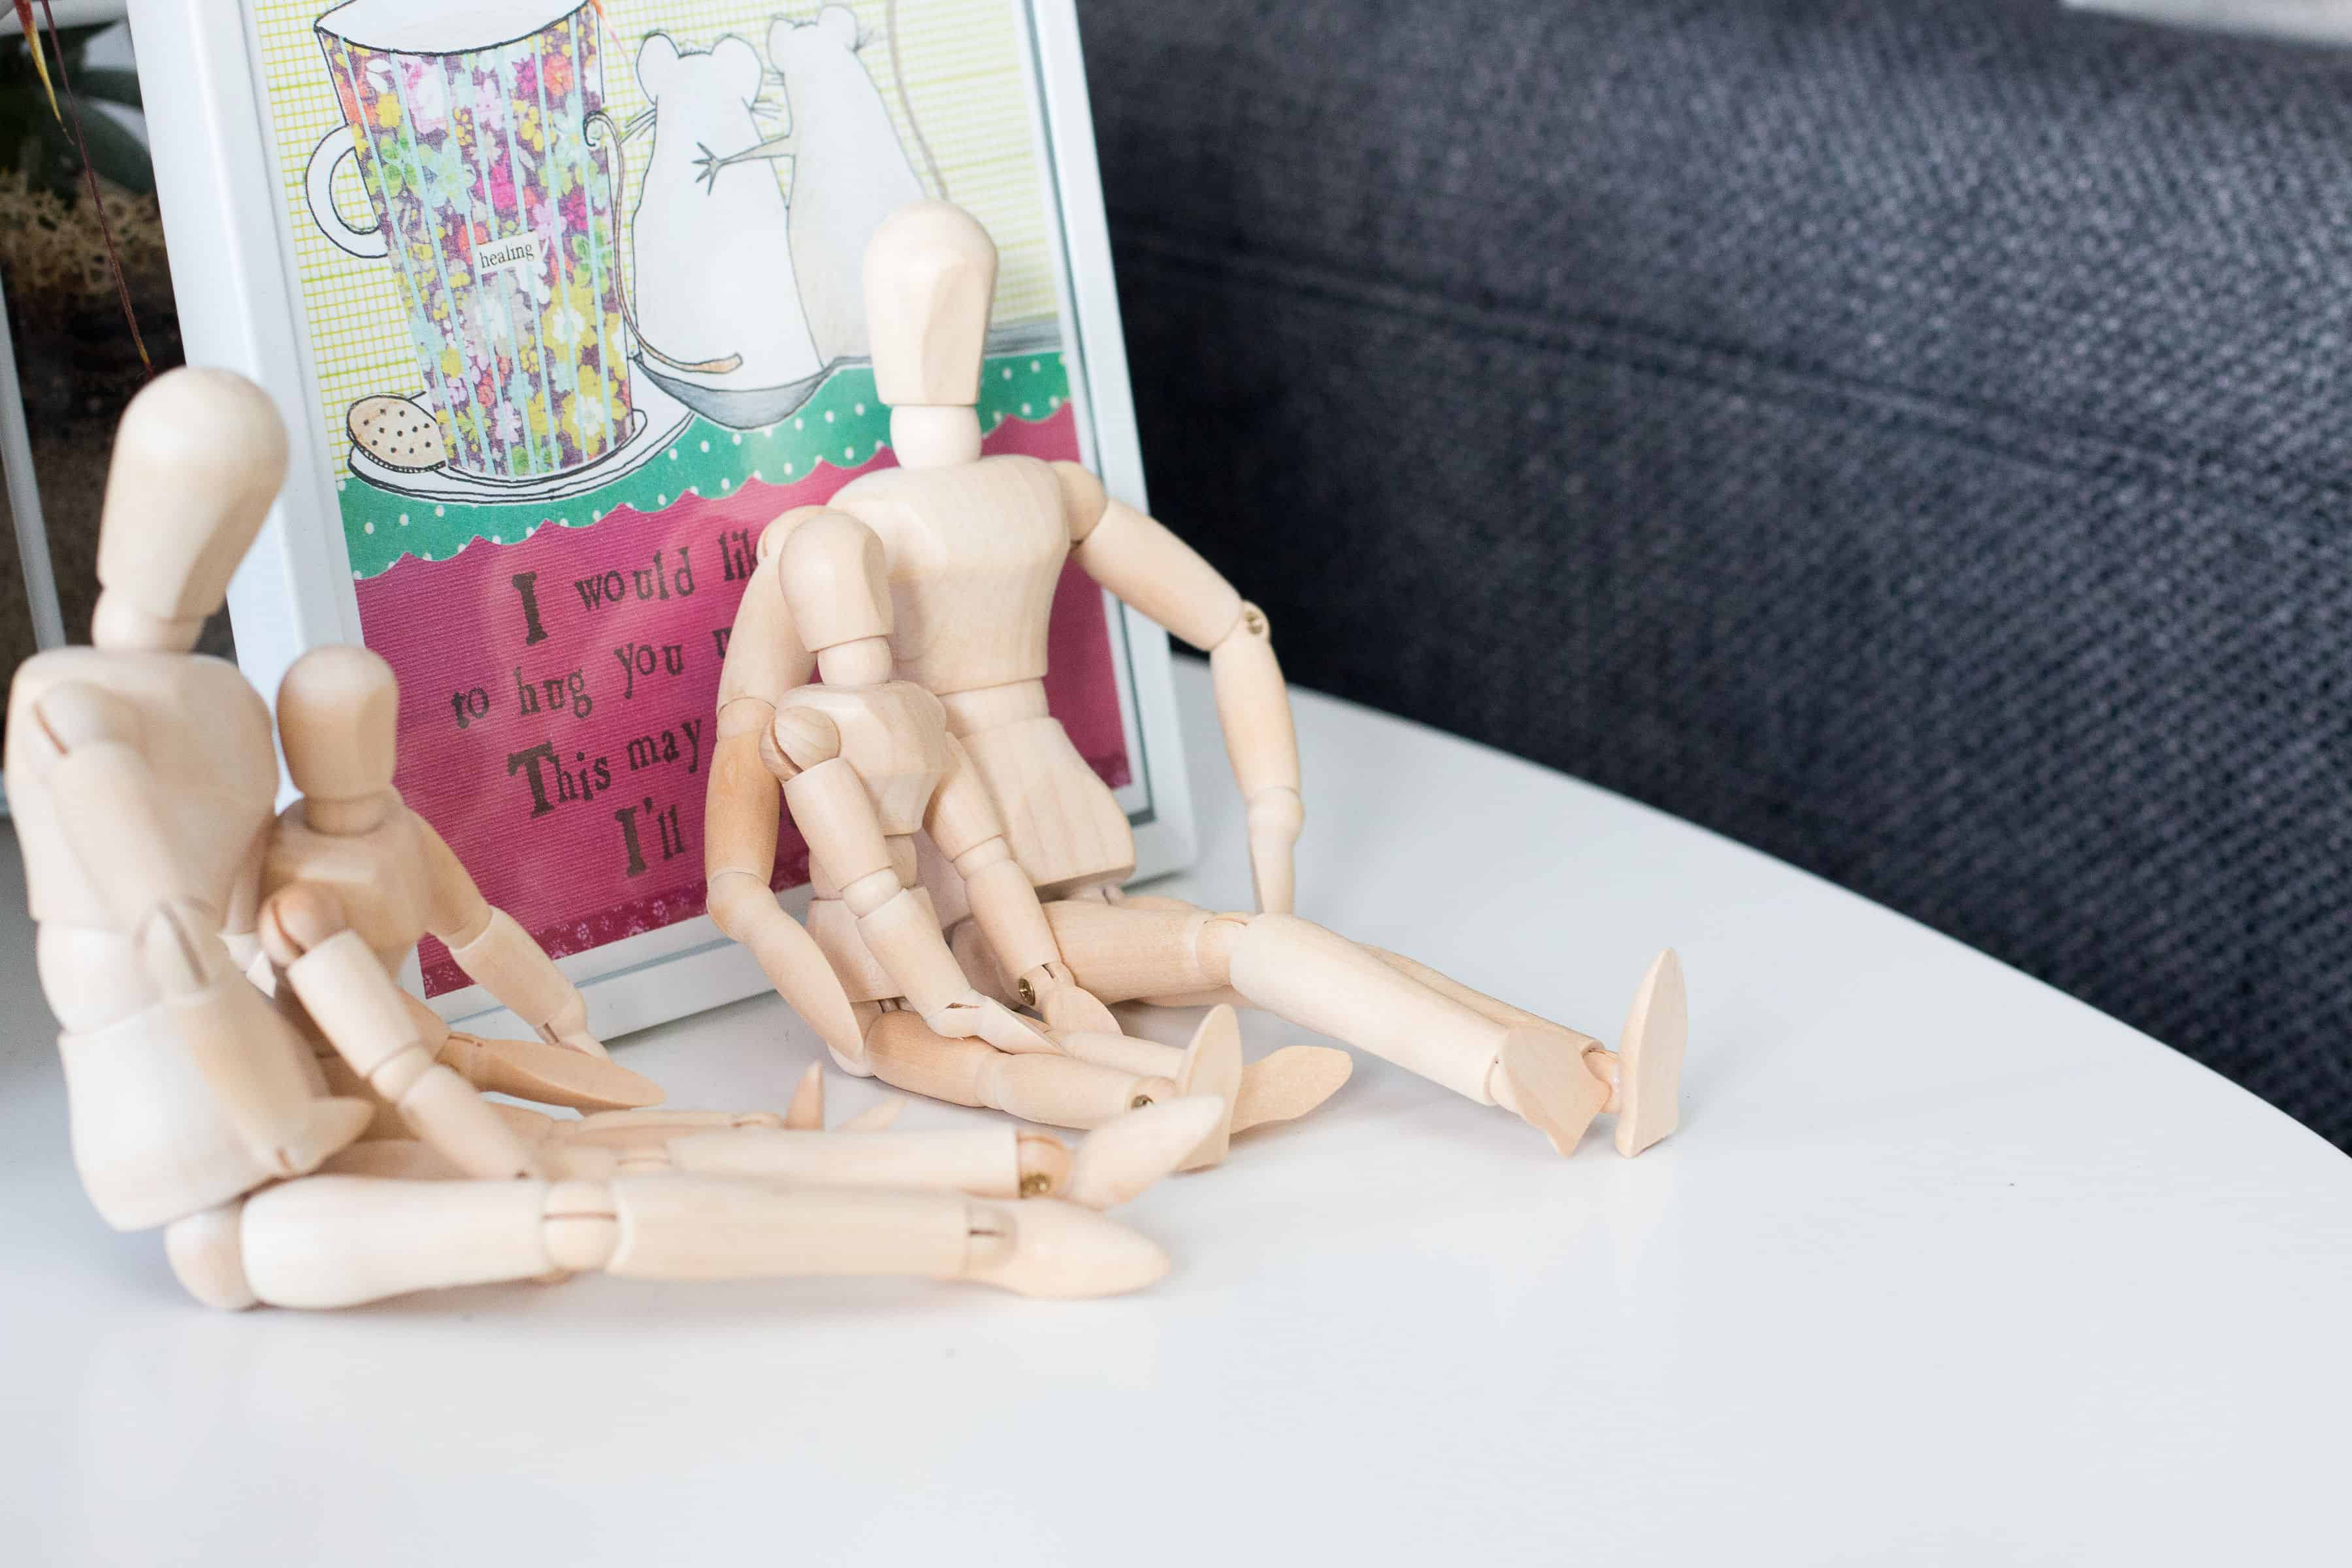 Family set of wooden doll figurines